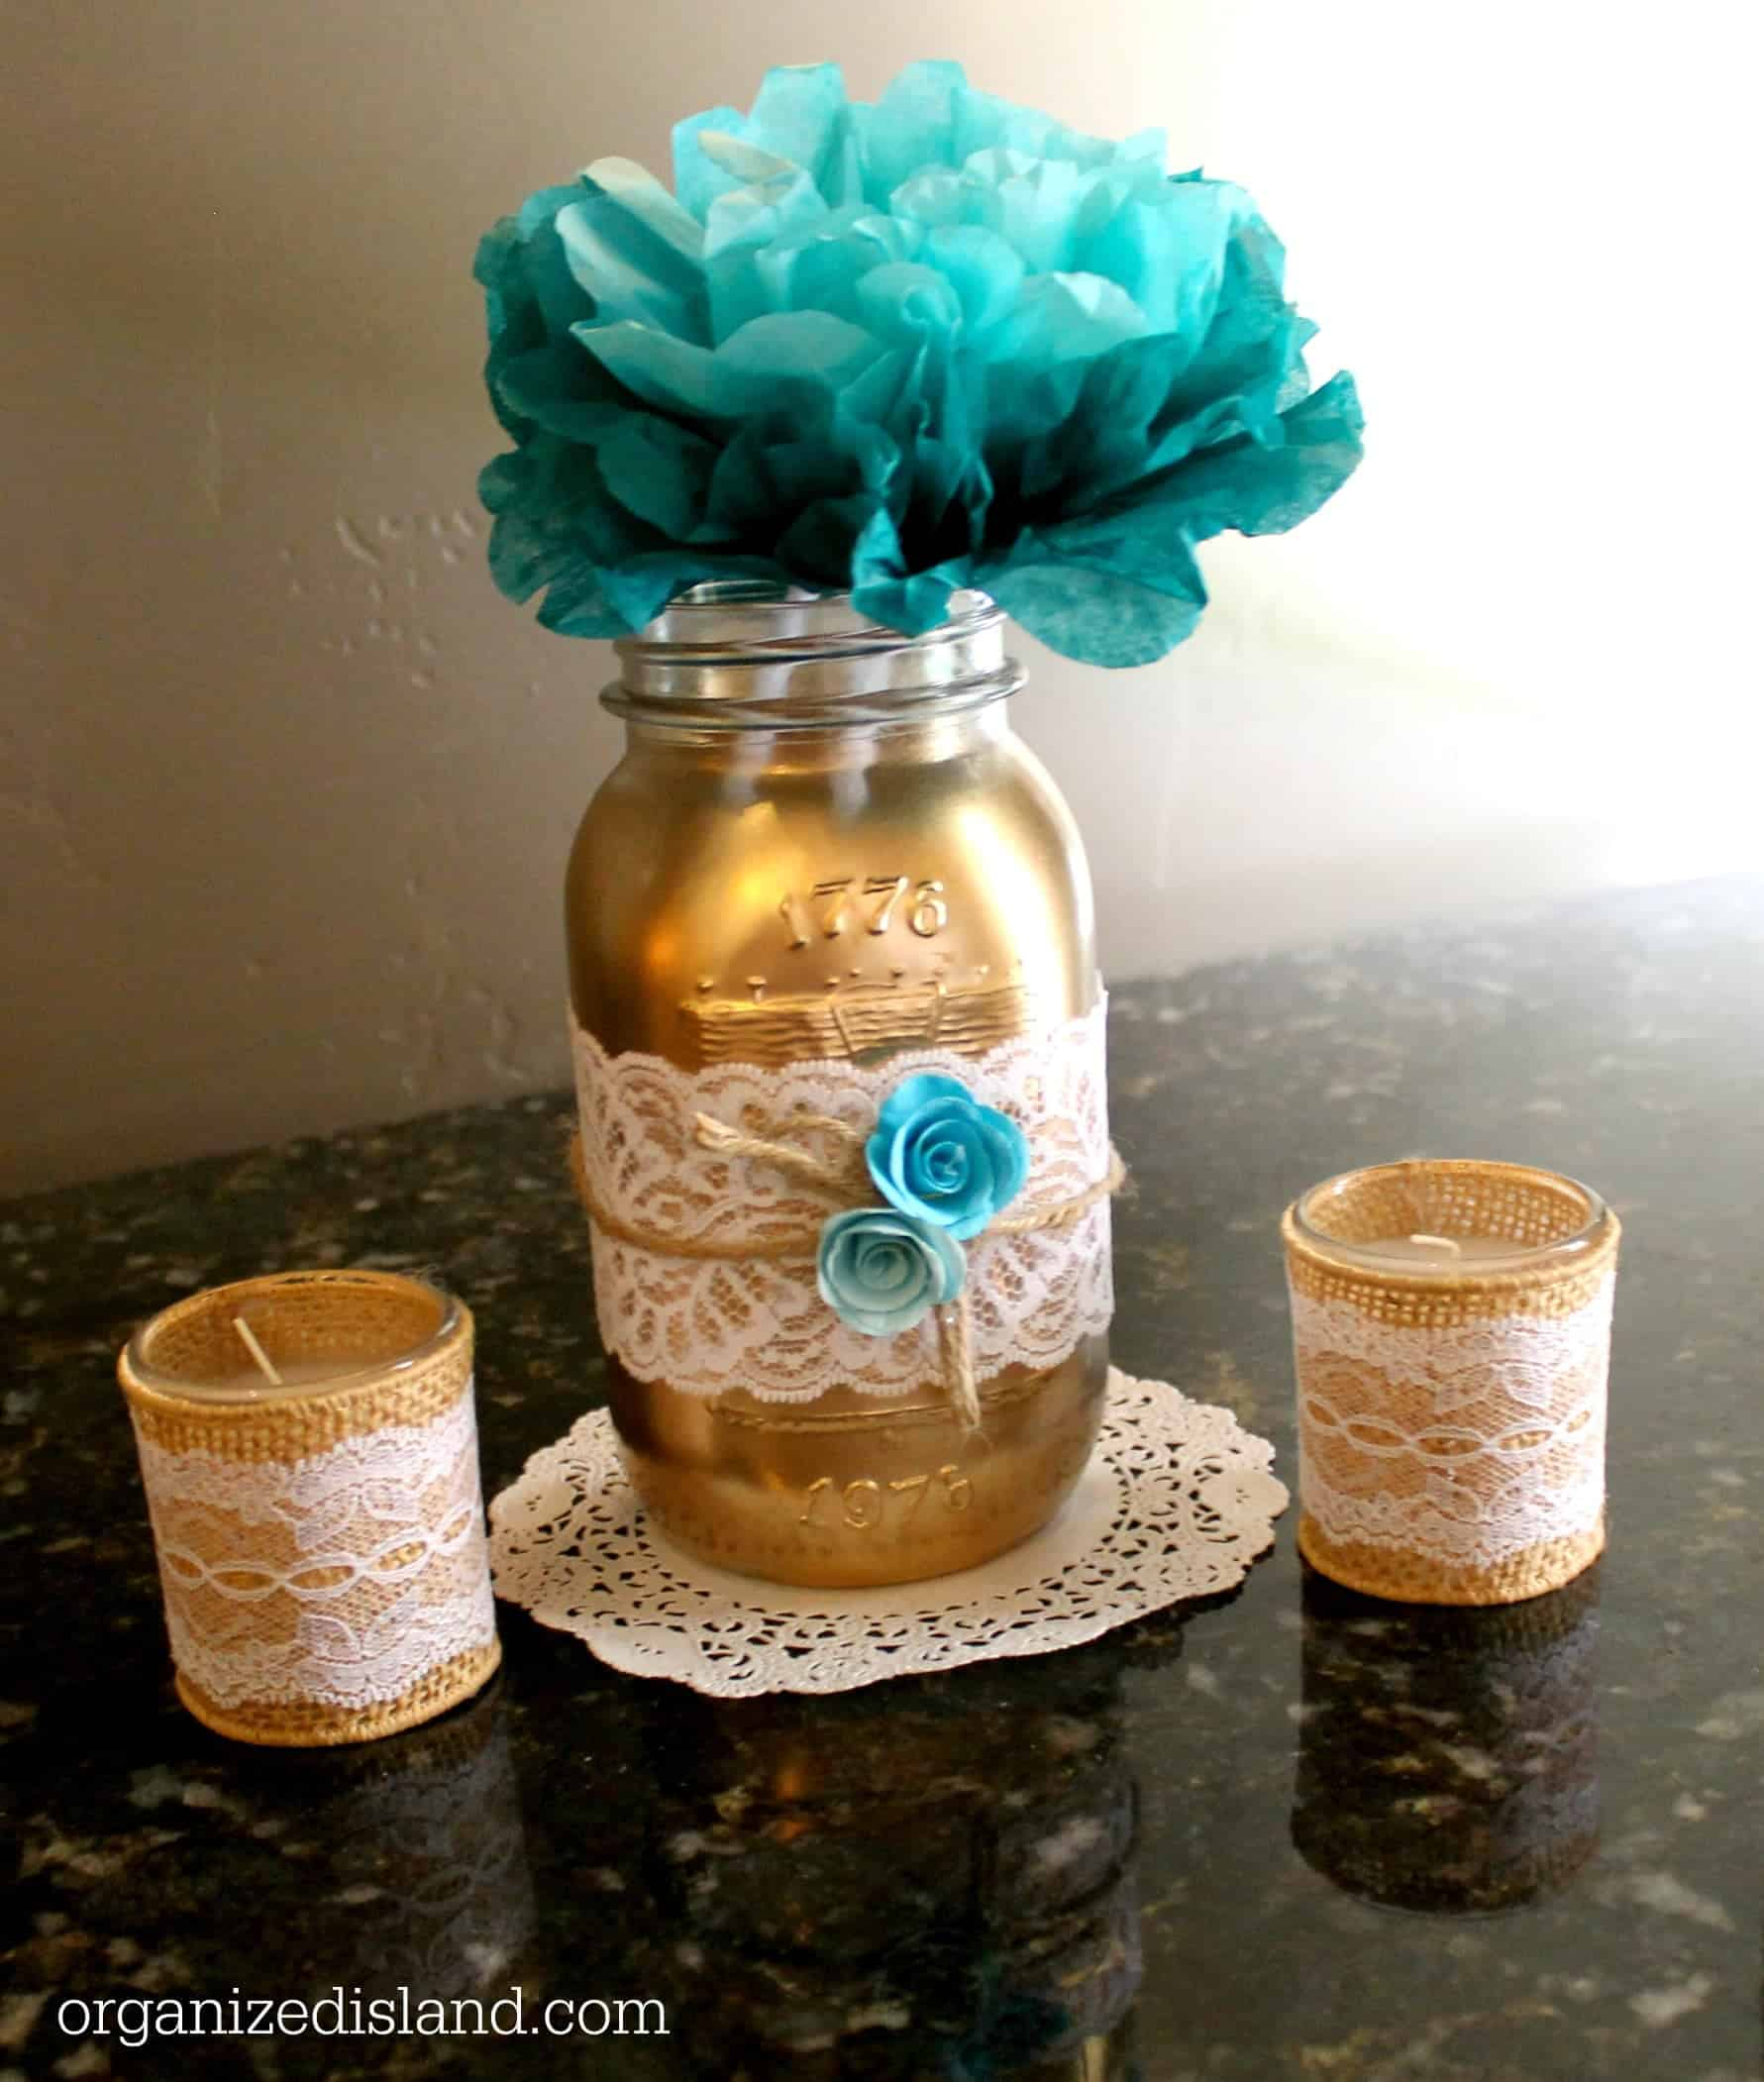 Mason jar decorating ideas for weddings - Lovely Mason Jar Craft Idea These Painted Mason Jars Made For Pretty Centerpieces For The